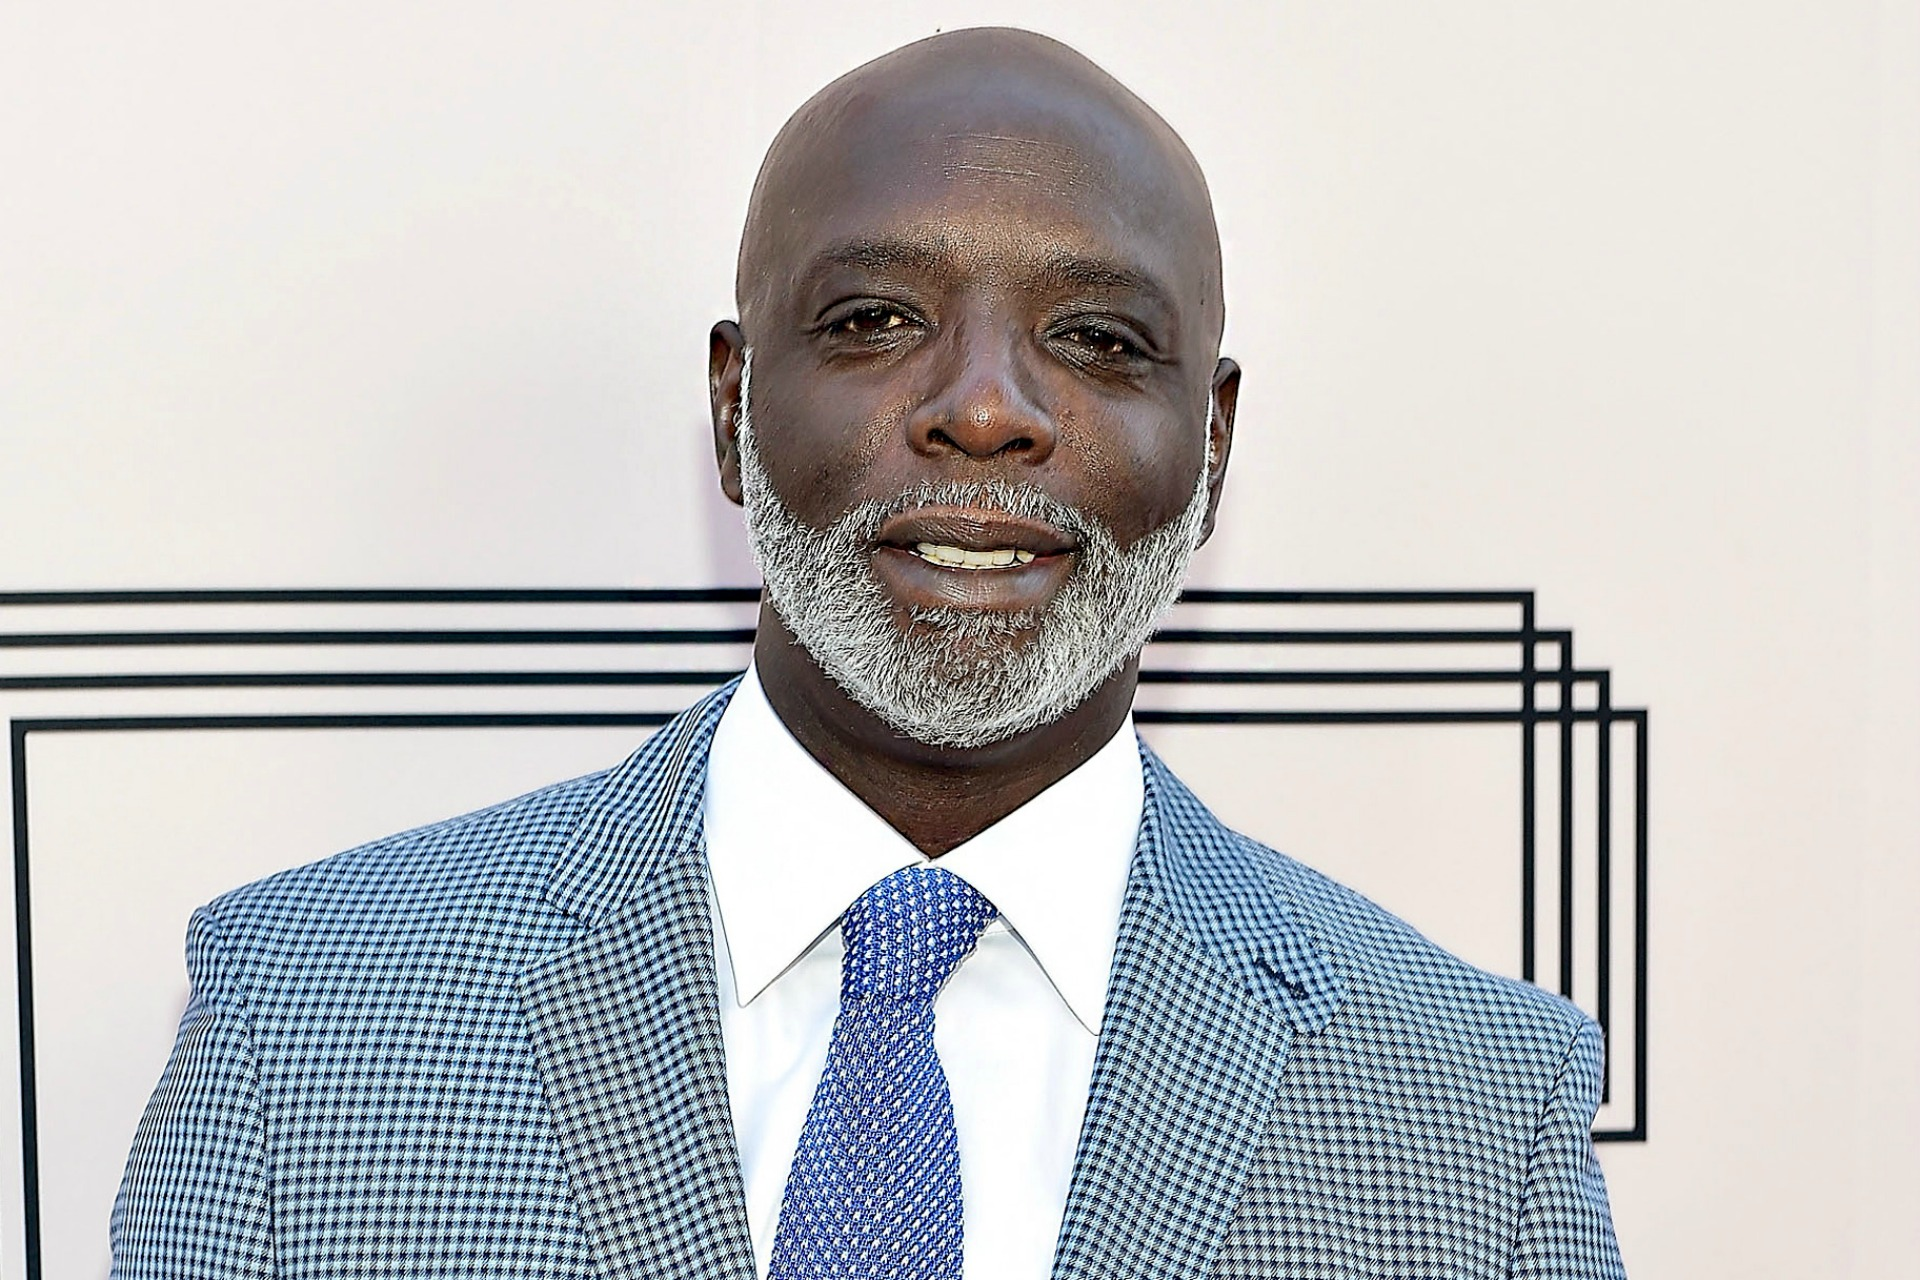 NeNe Leakes Is Happy To Announce Fans That Peter Thomas Stopped By To Check On Her Husband Gregg Leakes